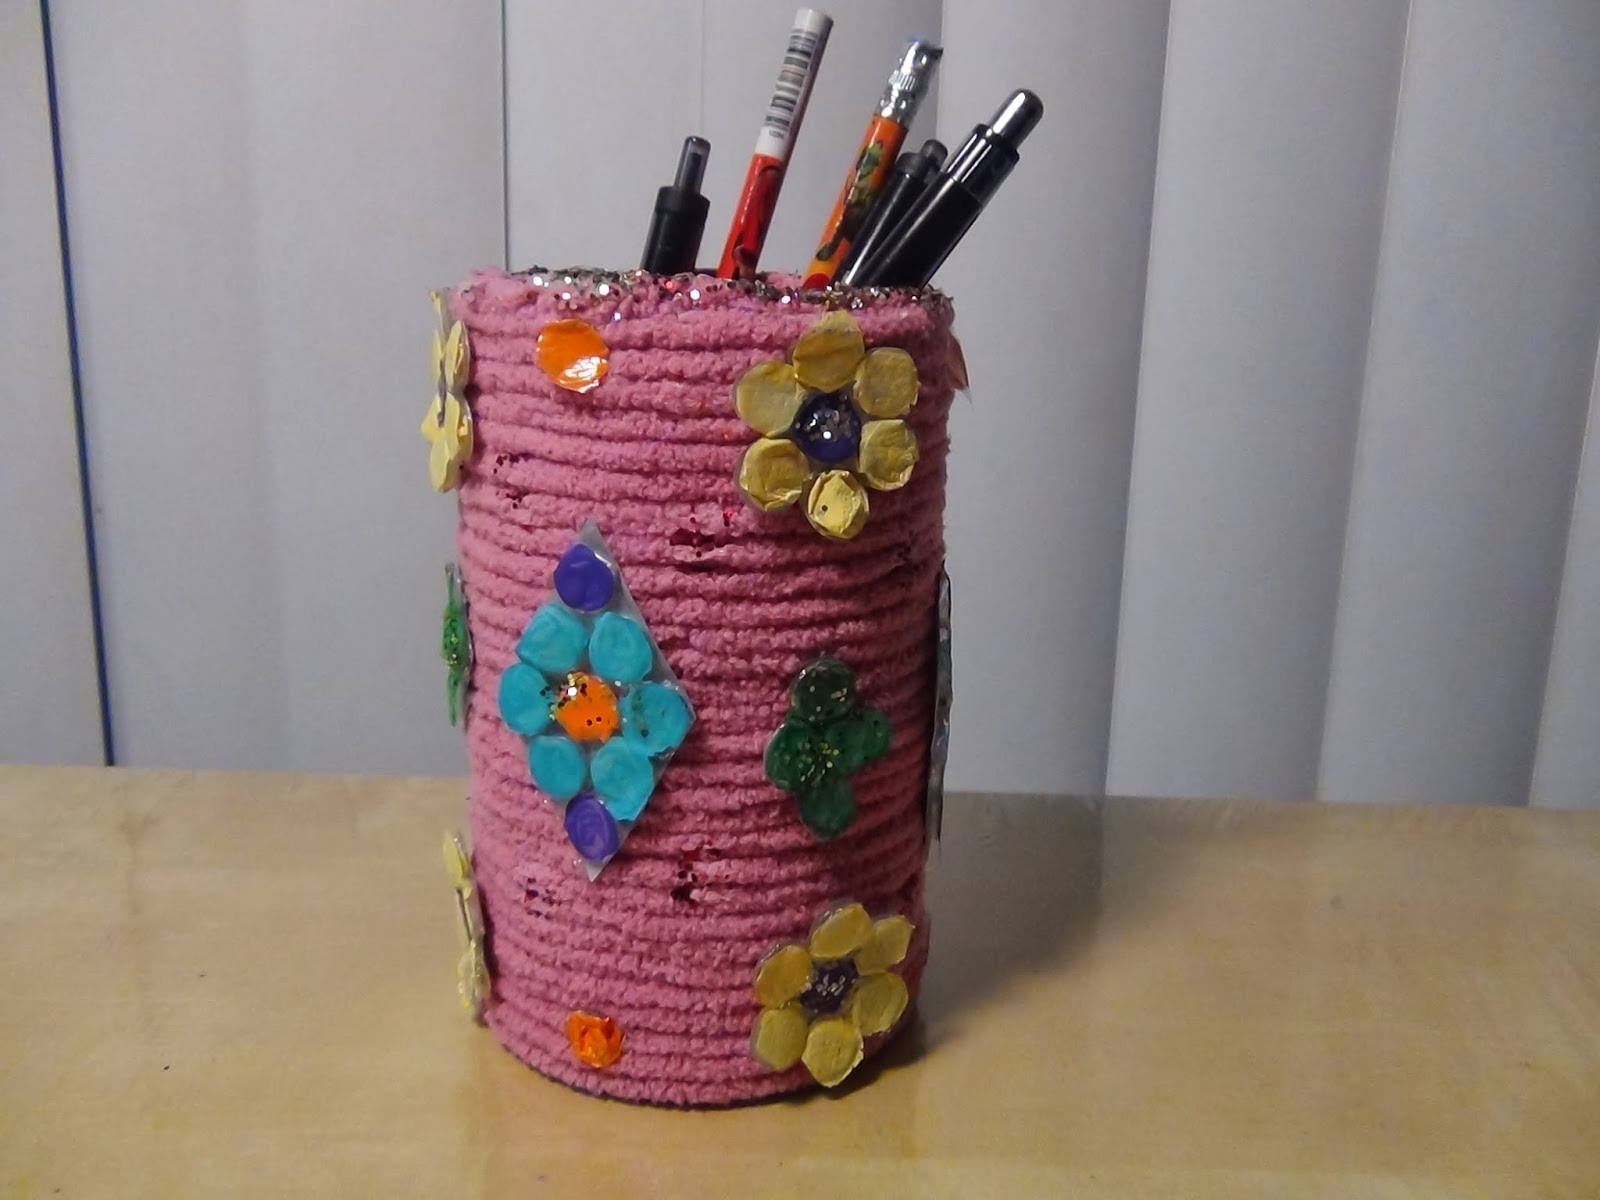 Creative diy crafts diy pen spoon or brush holder with for Make things out of waste material